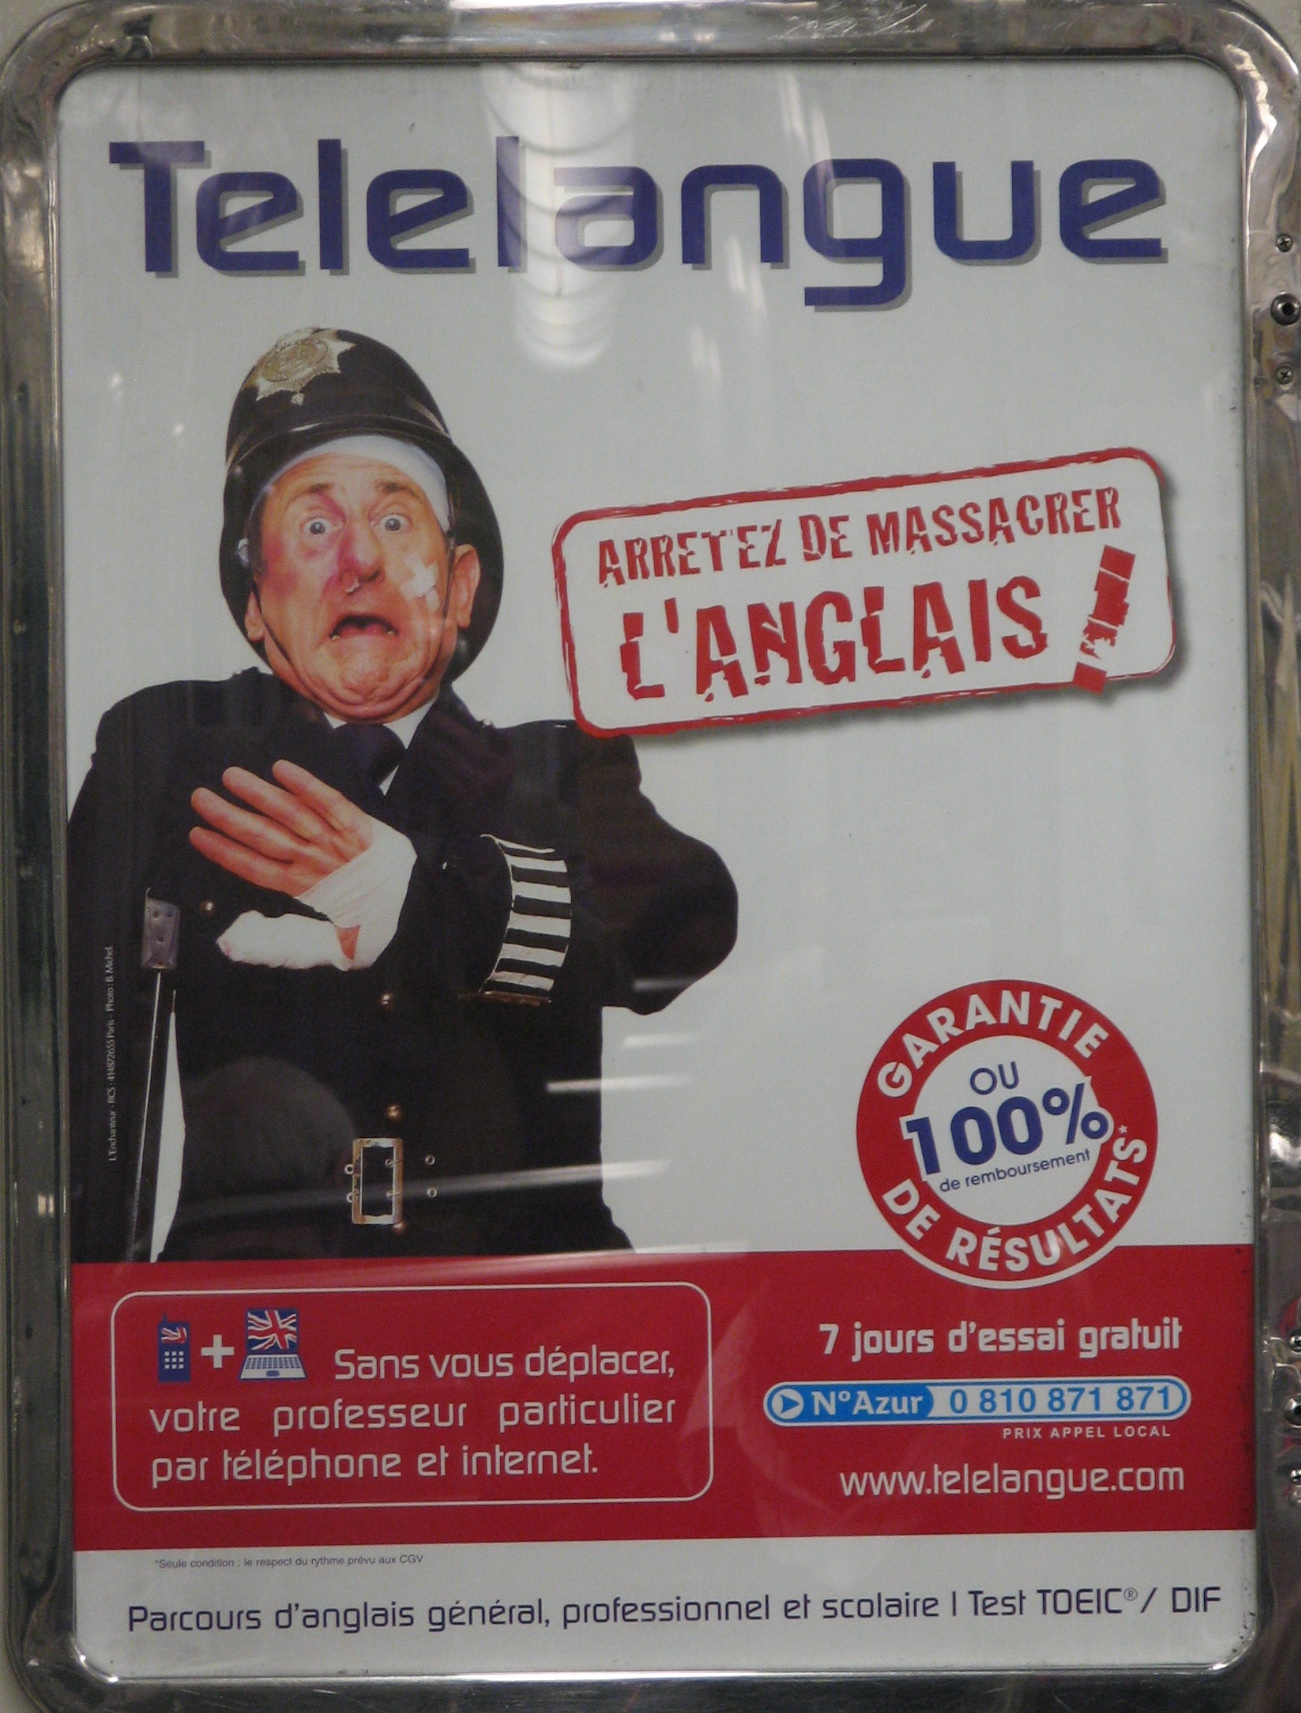 PROOF THAT THE FRENCH UNNWLTHAVE A SPLENDIDE SENSE OF HUMOUR